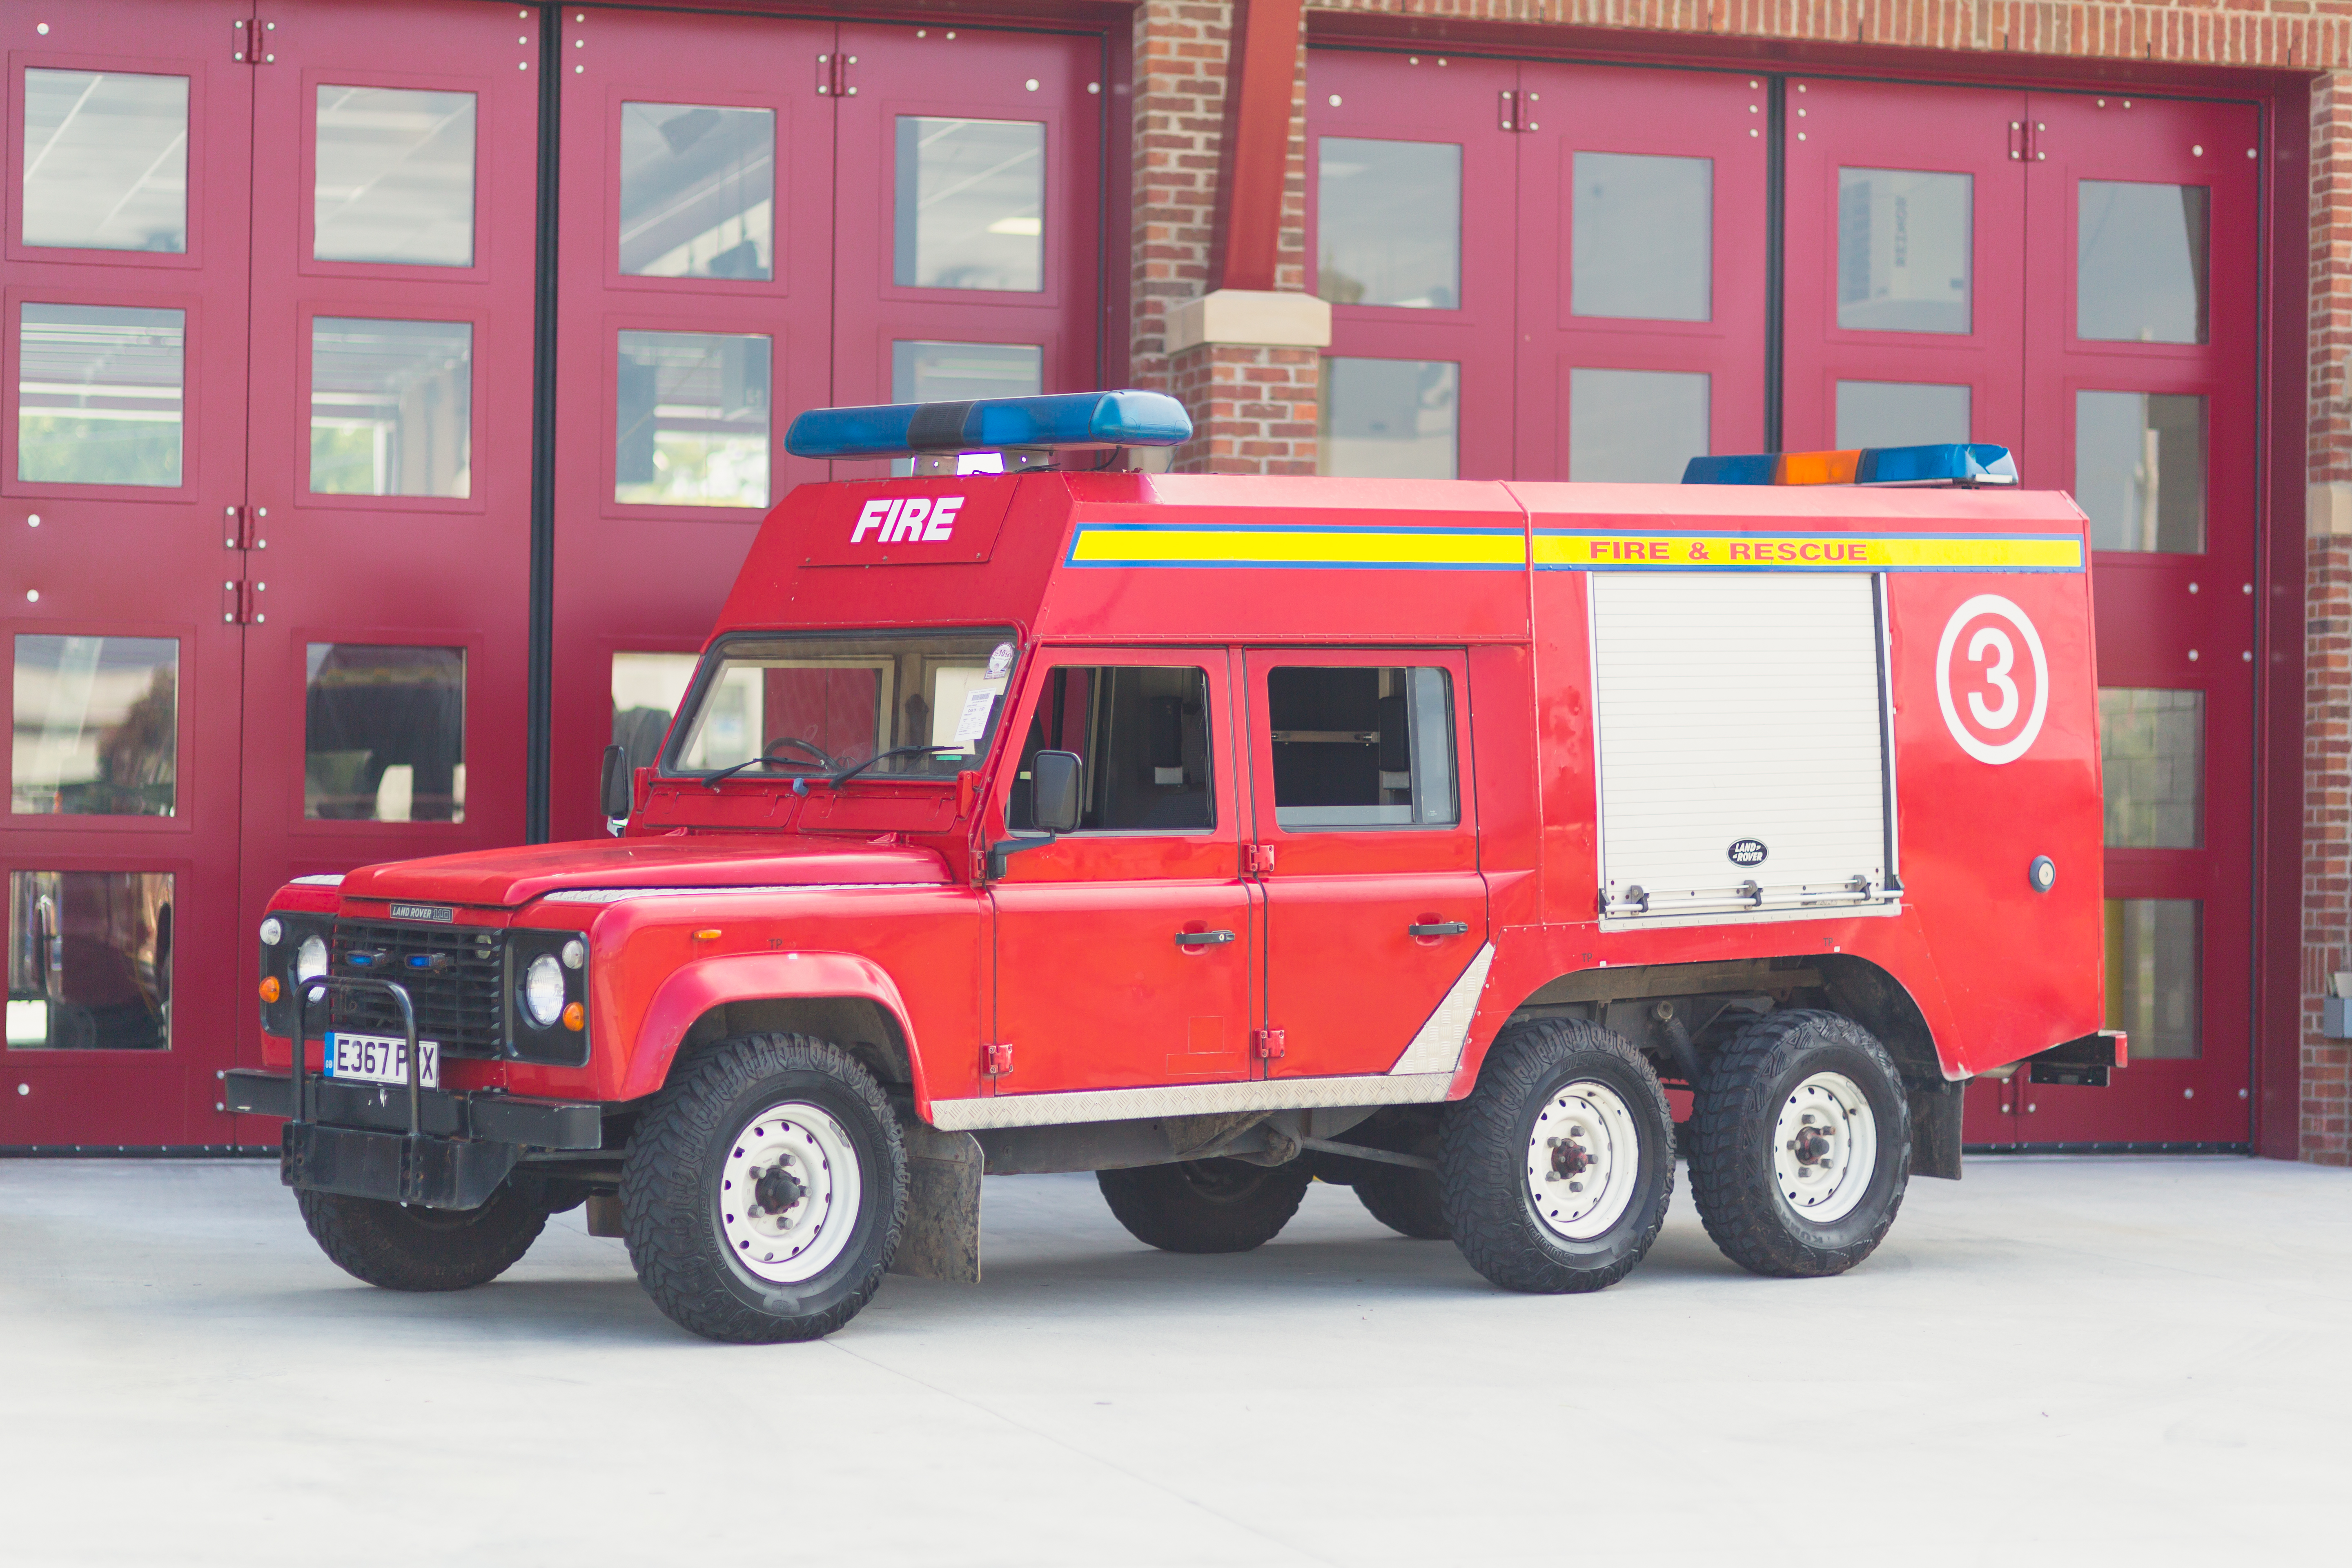 6 215 6 Firetruck Land Rover Defender V 8 Relic Imports Land Rover Defenders And Exotic Cars